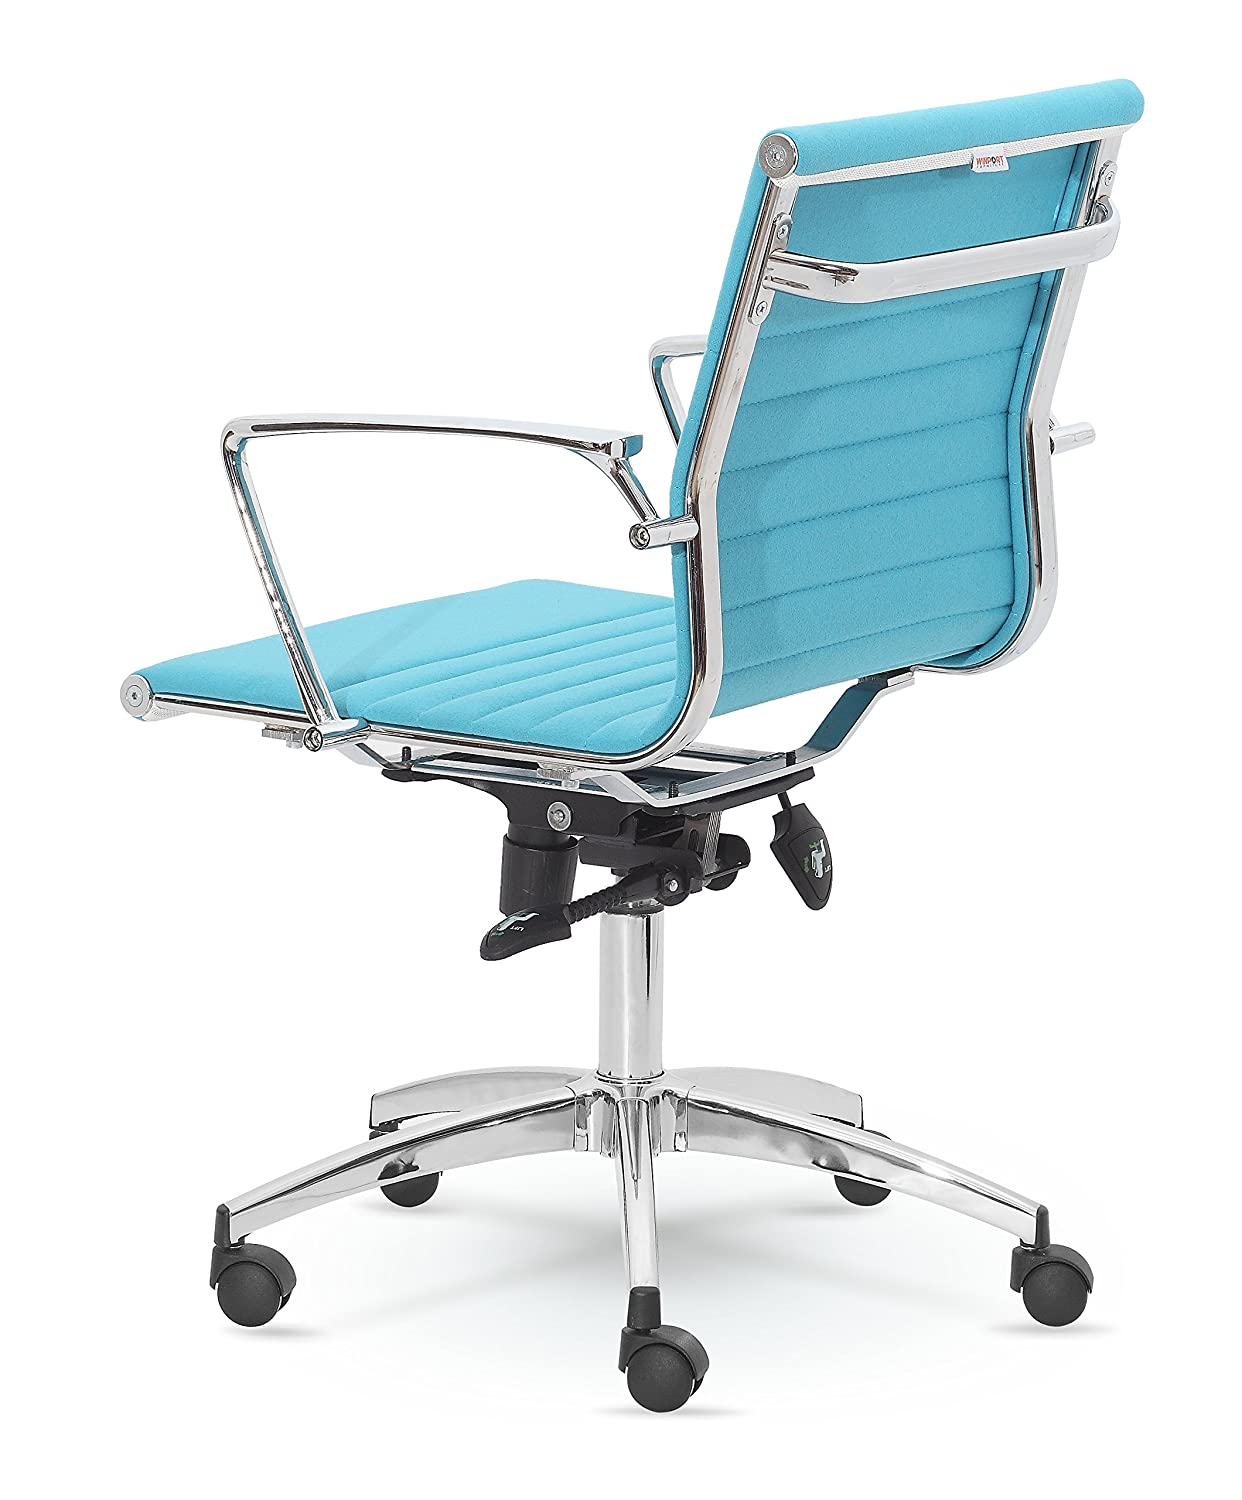 Winport Dynamic Mid-Back Fabric Swivel Conference Chair MZNF9712 Aqua – Blue